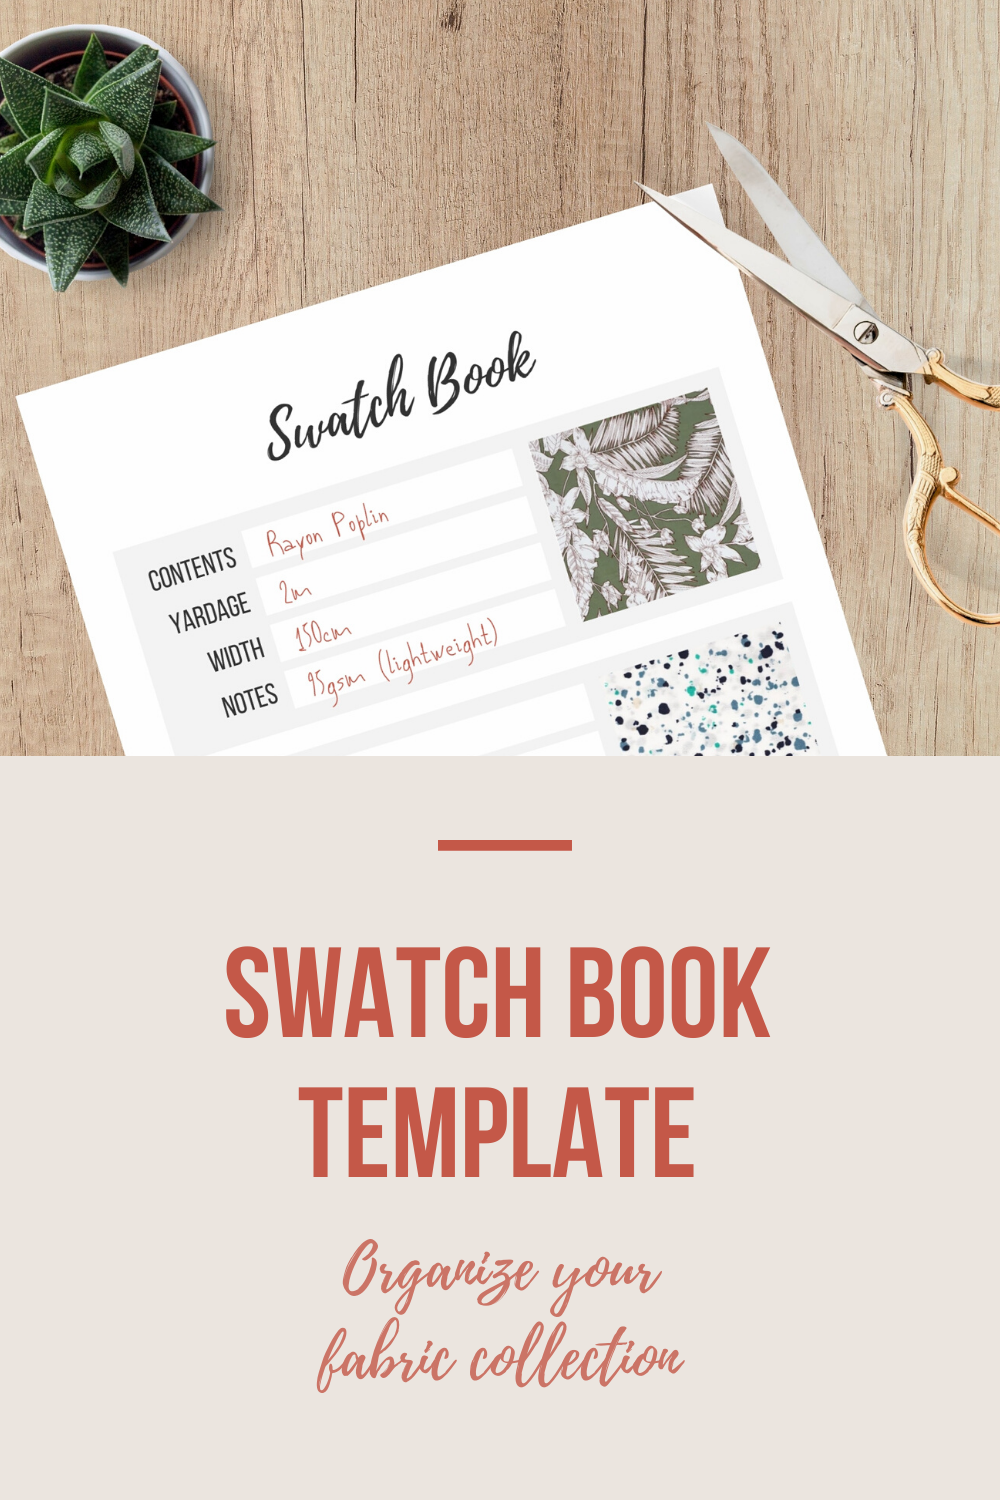 Swatch Book Template | Scarlet Stitch